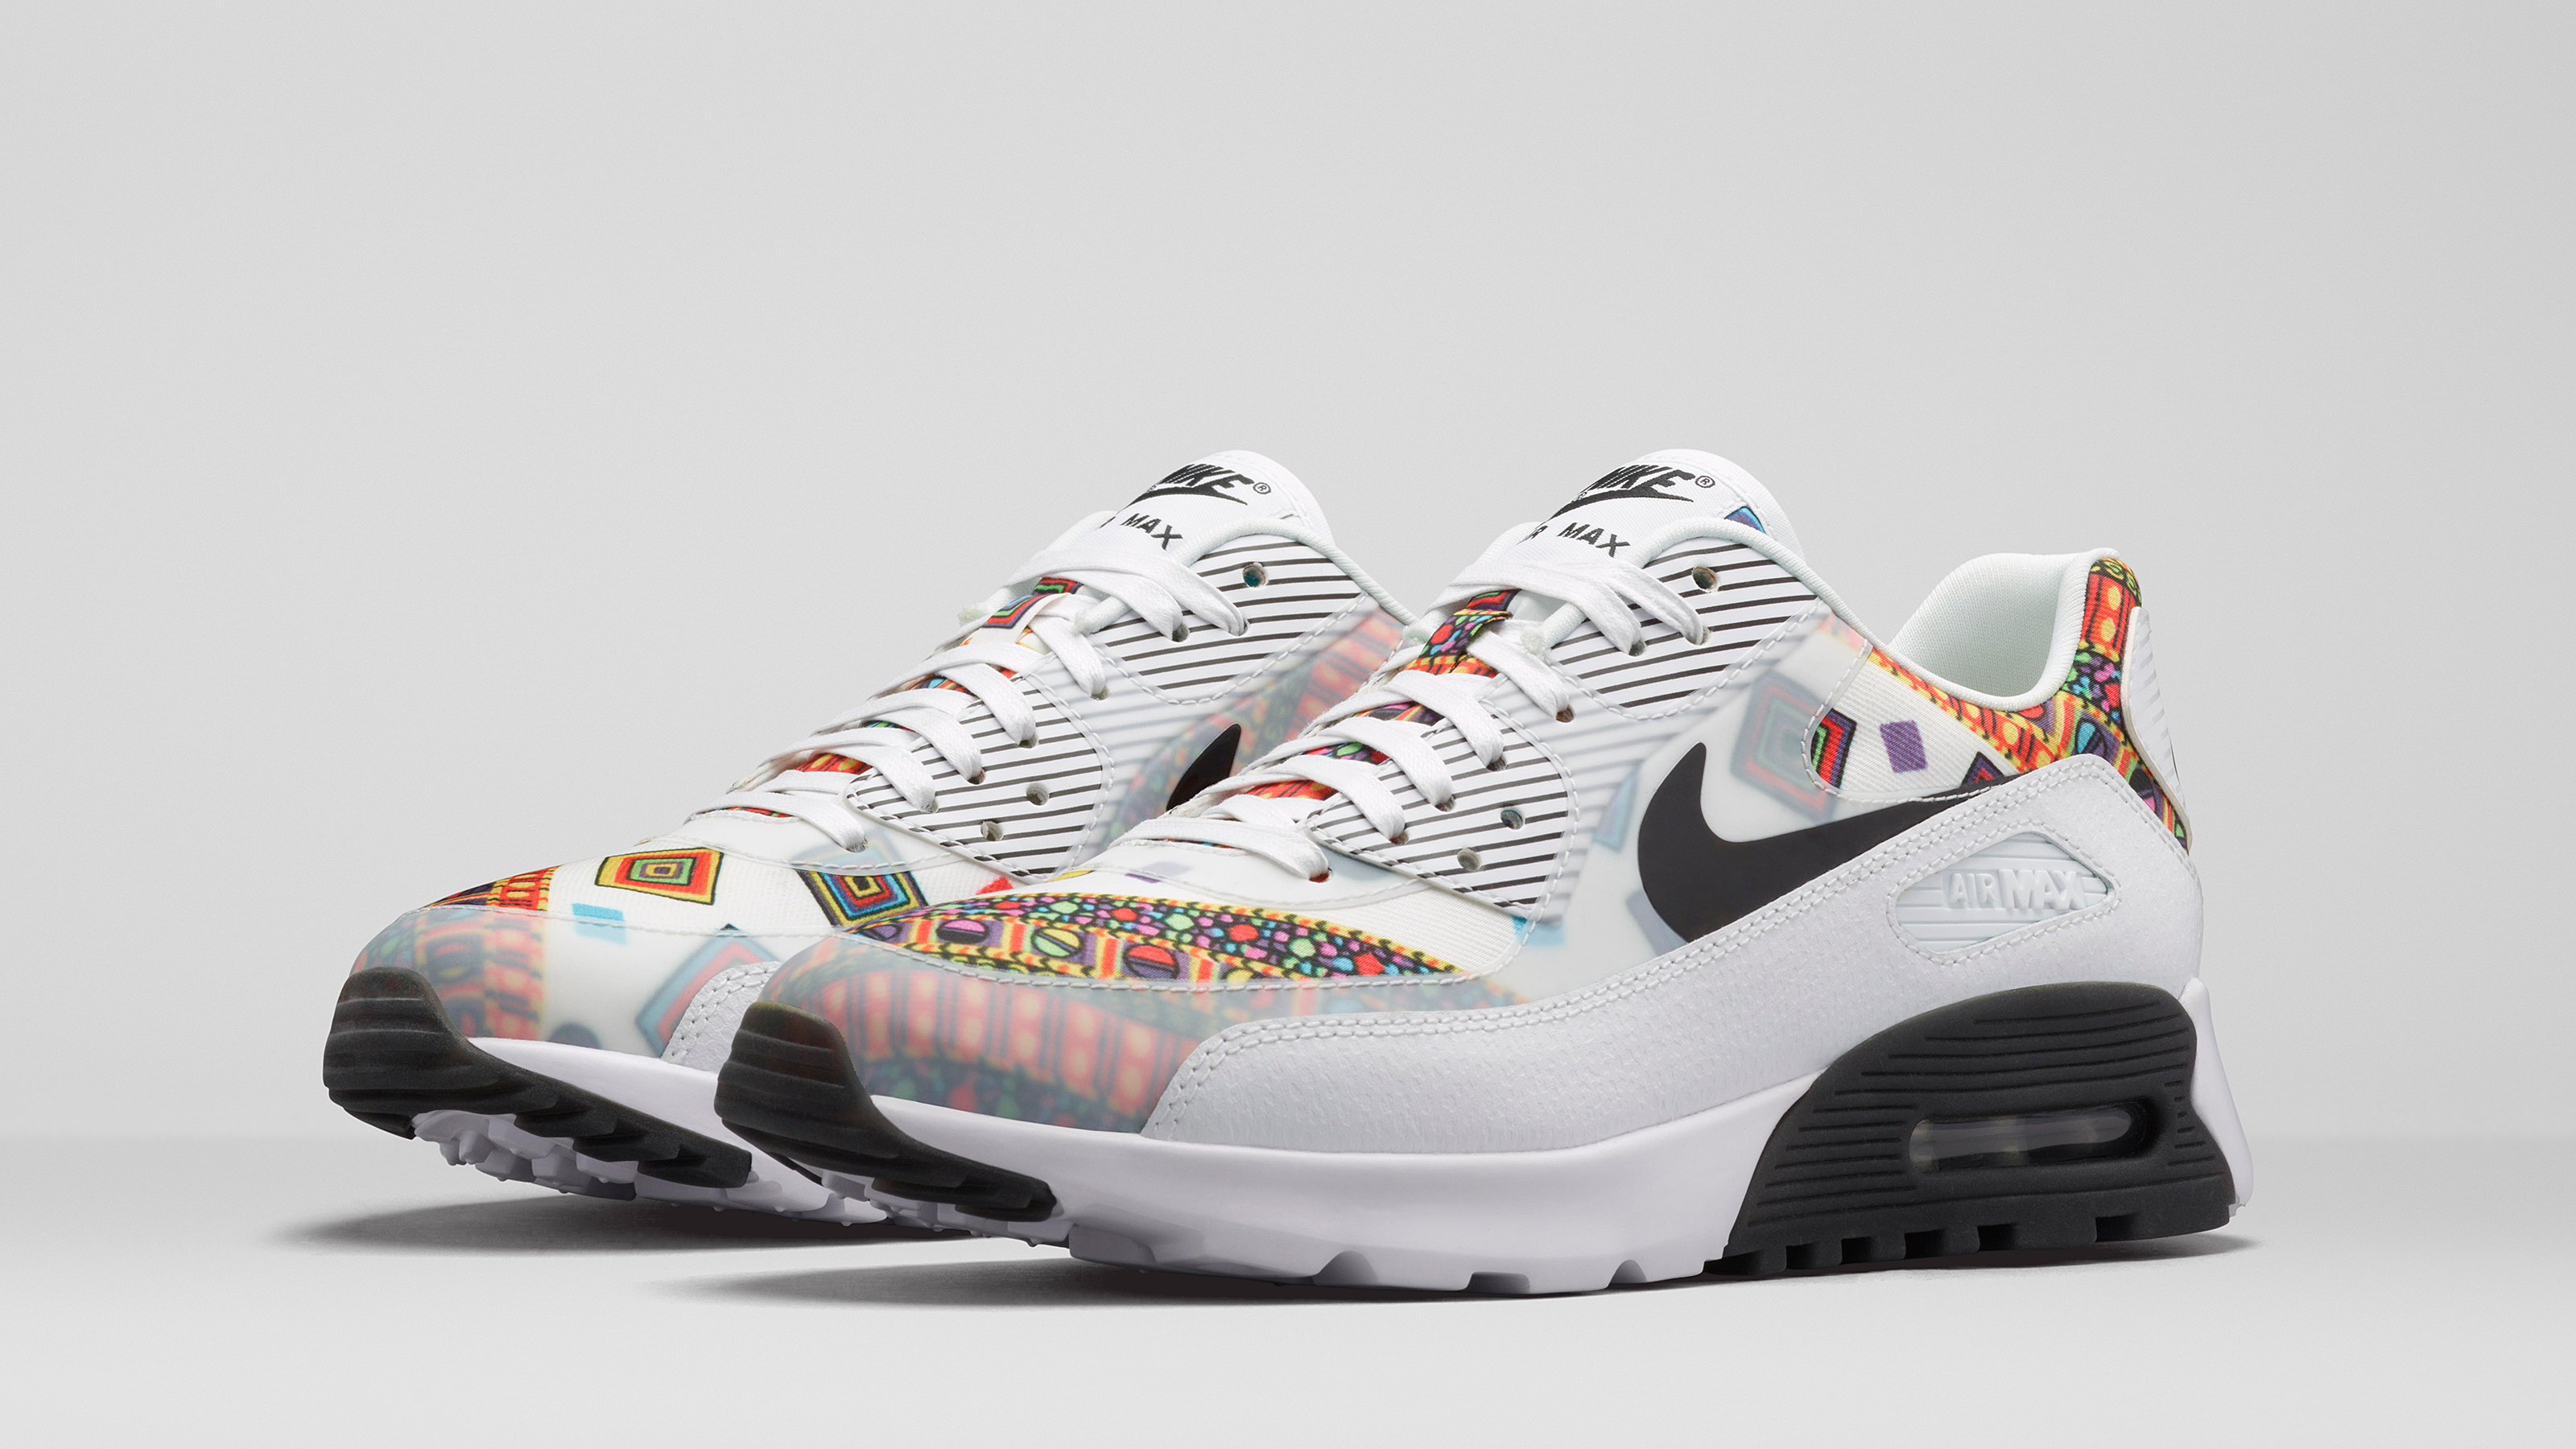 ... cheapest liberty of london x nike air max 90 ultra merlin official  images release date 5ba0e b8bea1fa8f